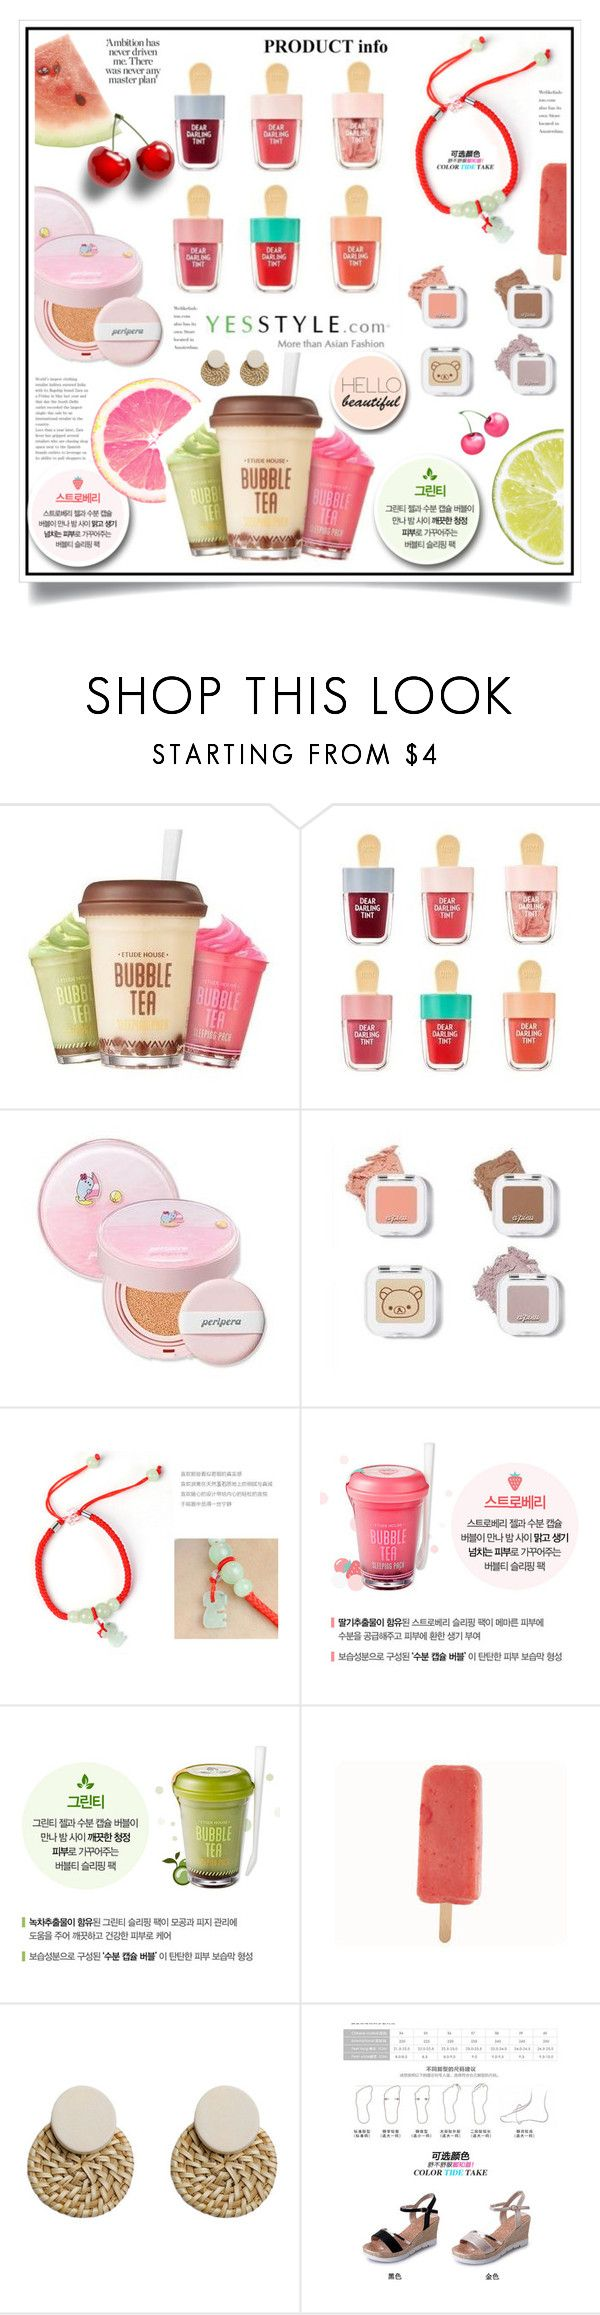 """""""Share your summer picnic outfit and WIN US$40 store coupons!"""" by ewa-naukowicz-wojcik ❤ liked on Polyvore featuring Etude House, peripera, Goroke and migunstyle"""